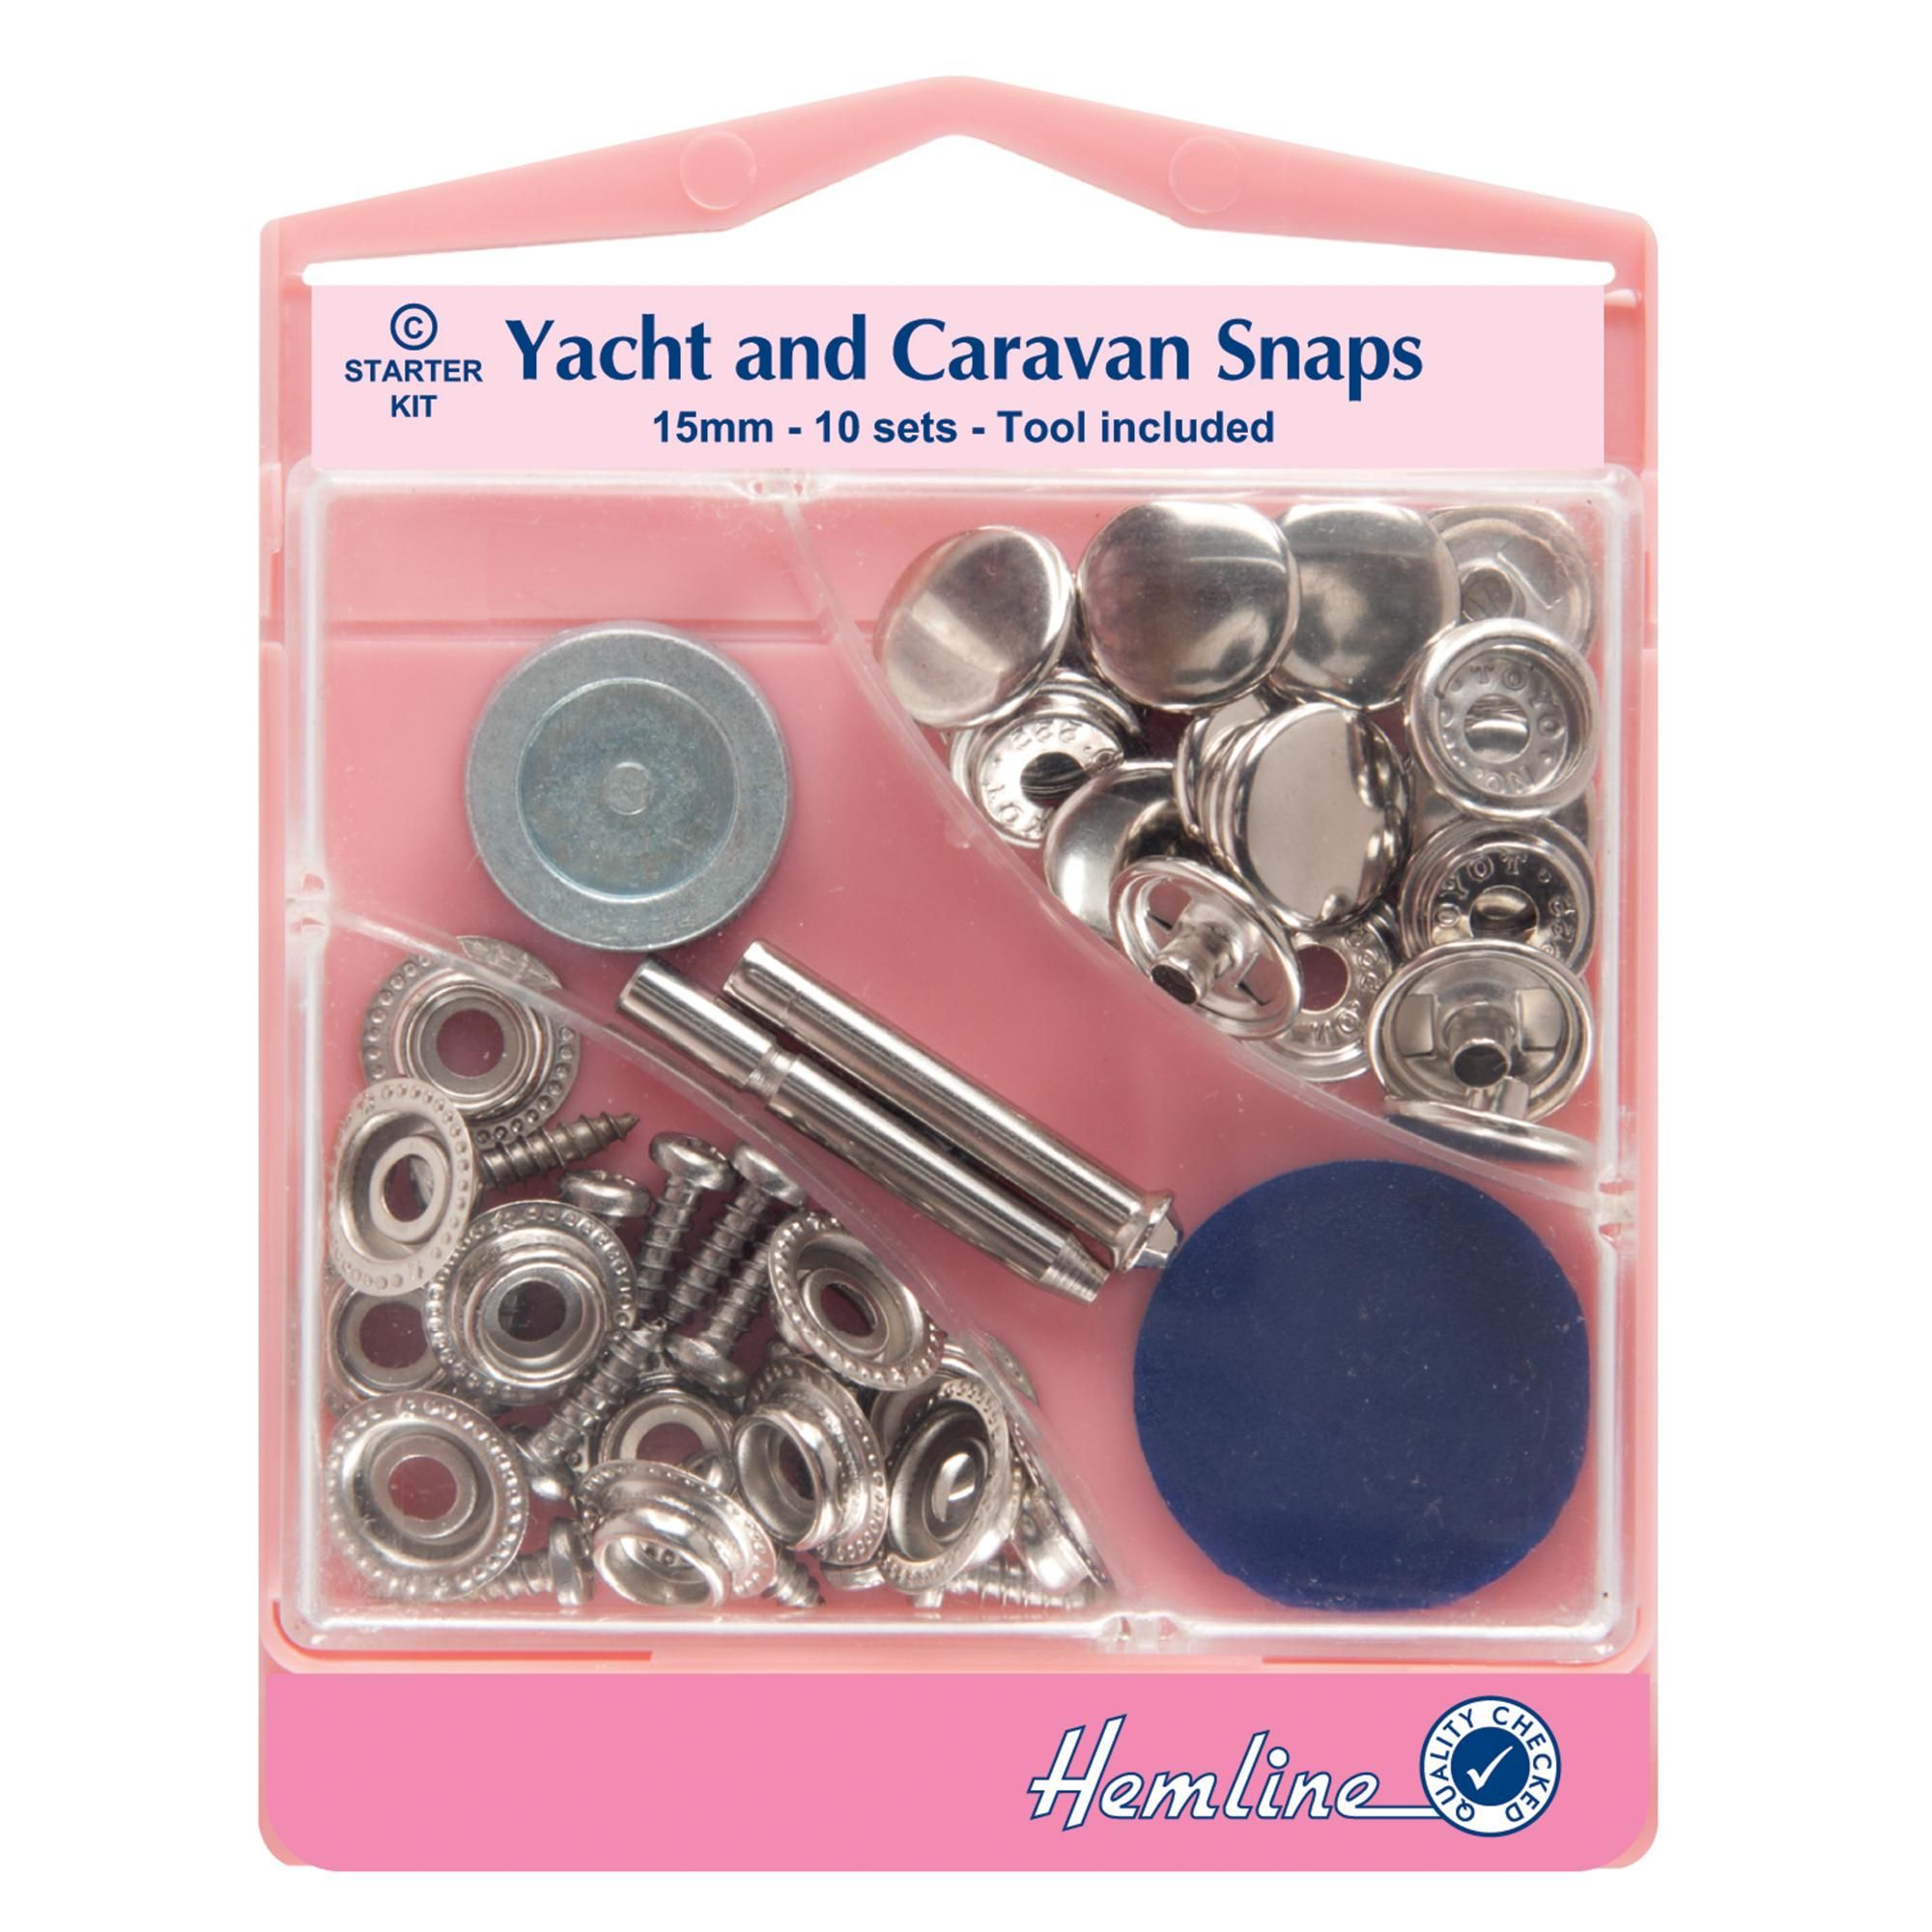 Supplied with 10 sets of snaps and tools at 15mm each, this sturdy pack of snaps is constructed from metal material.